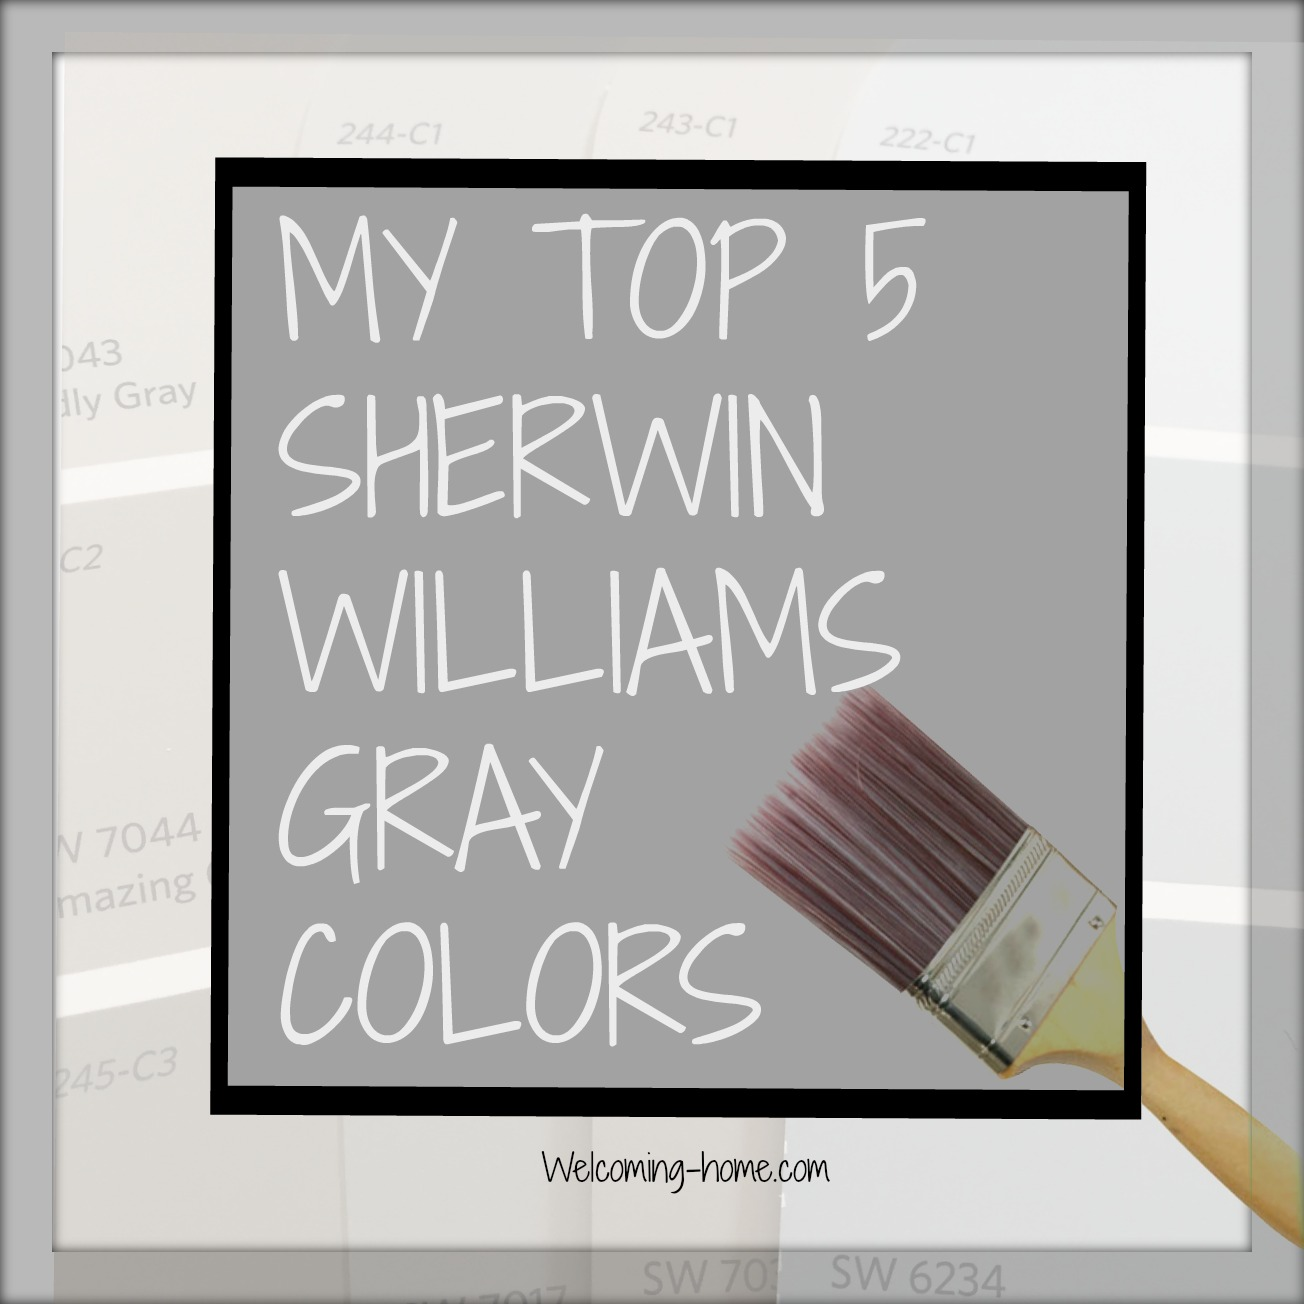 My Top 20 Sherwin Williams Gray Colors — Welcoming HOME